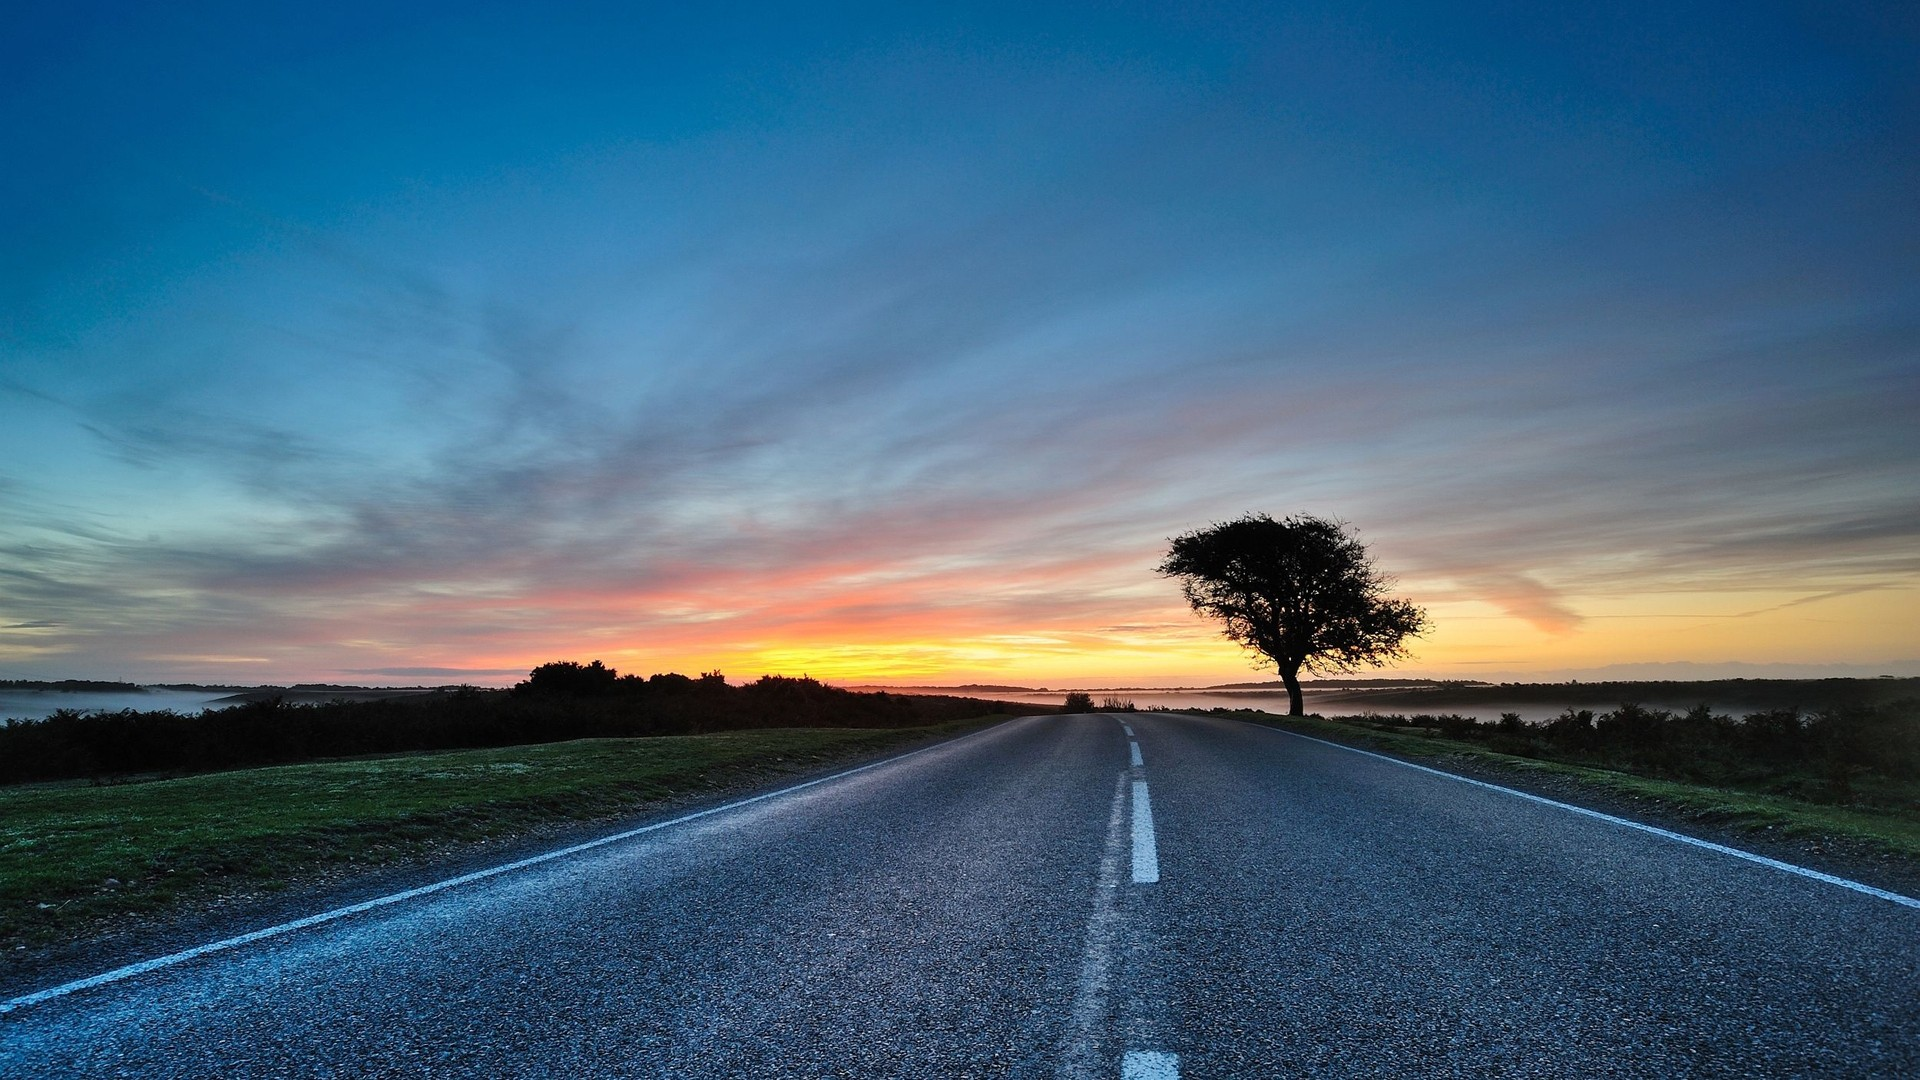 The road at dawn, photo wallpaper for your desktop.